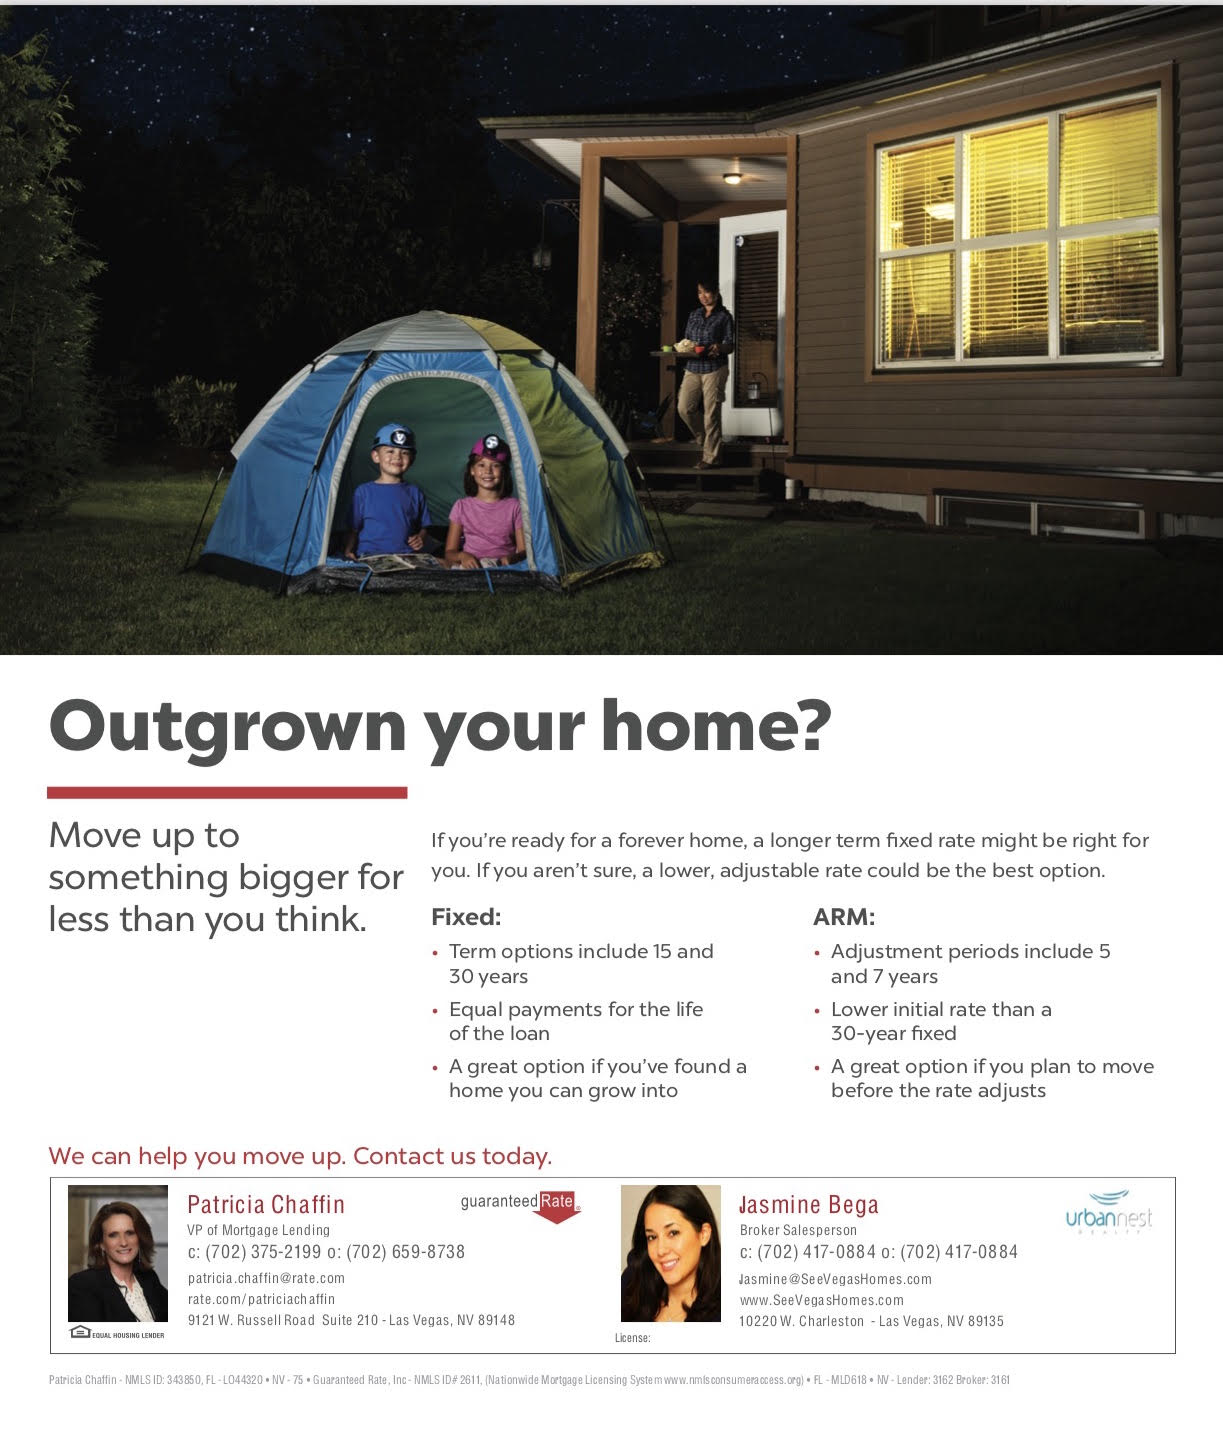 Outgrown home move up seevegashomes